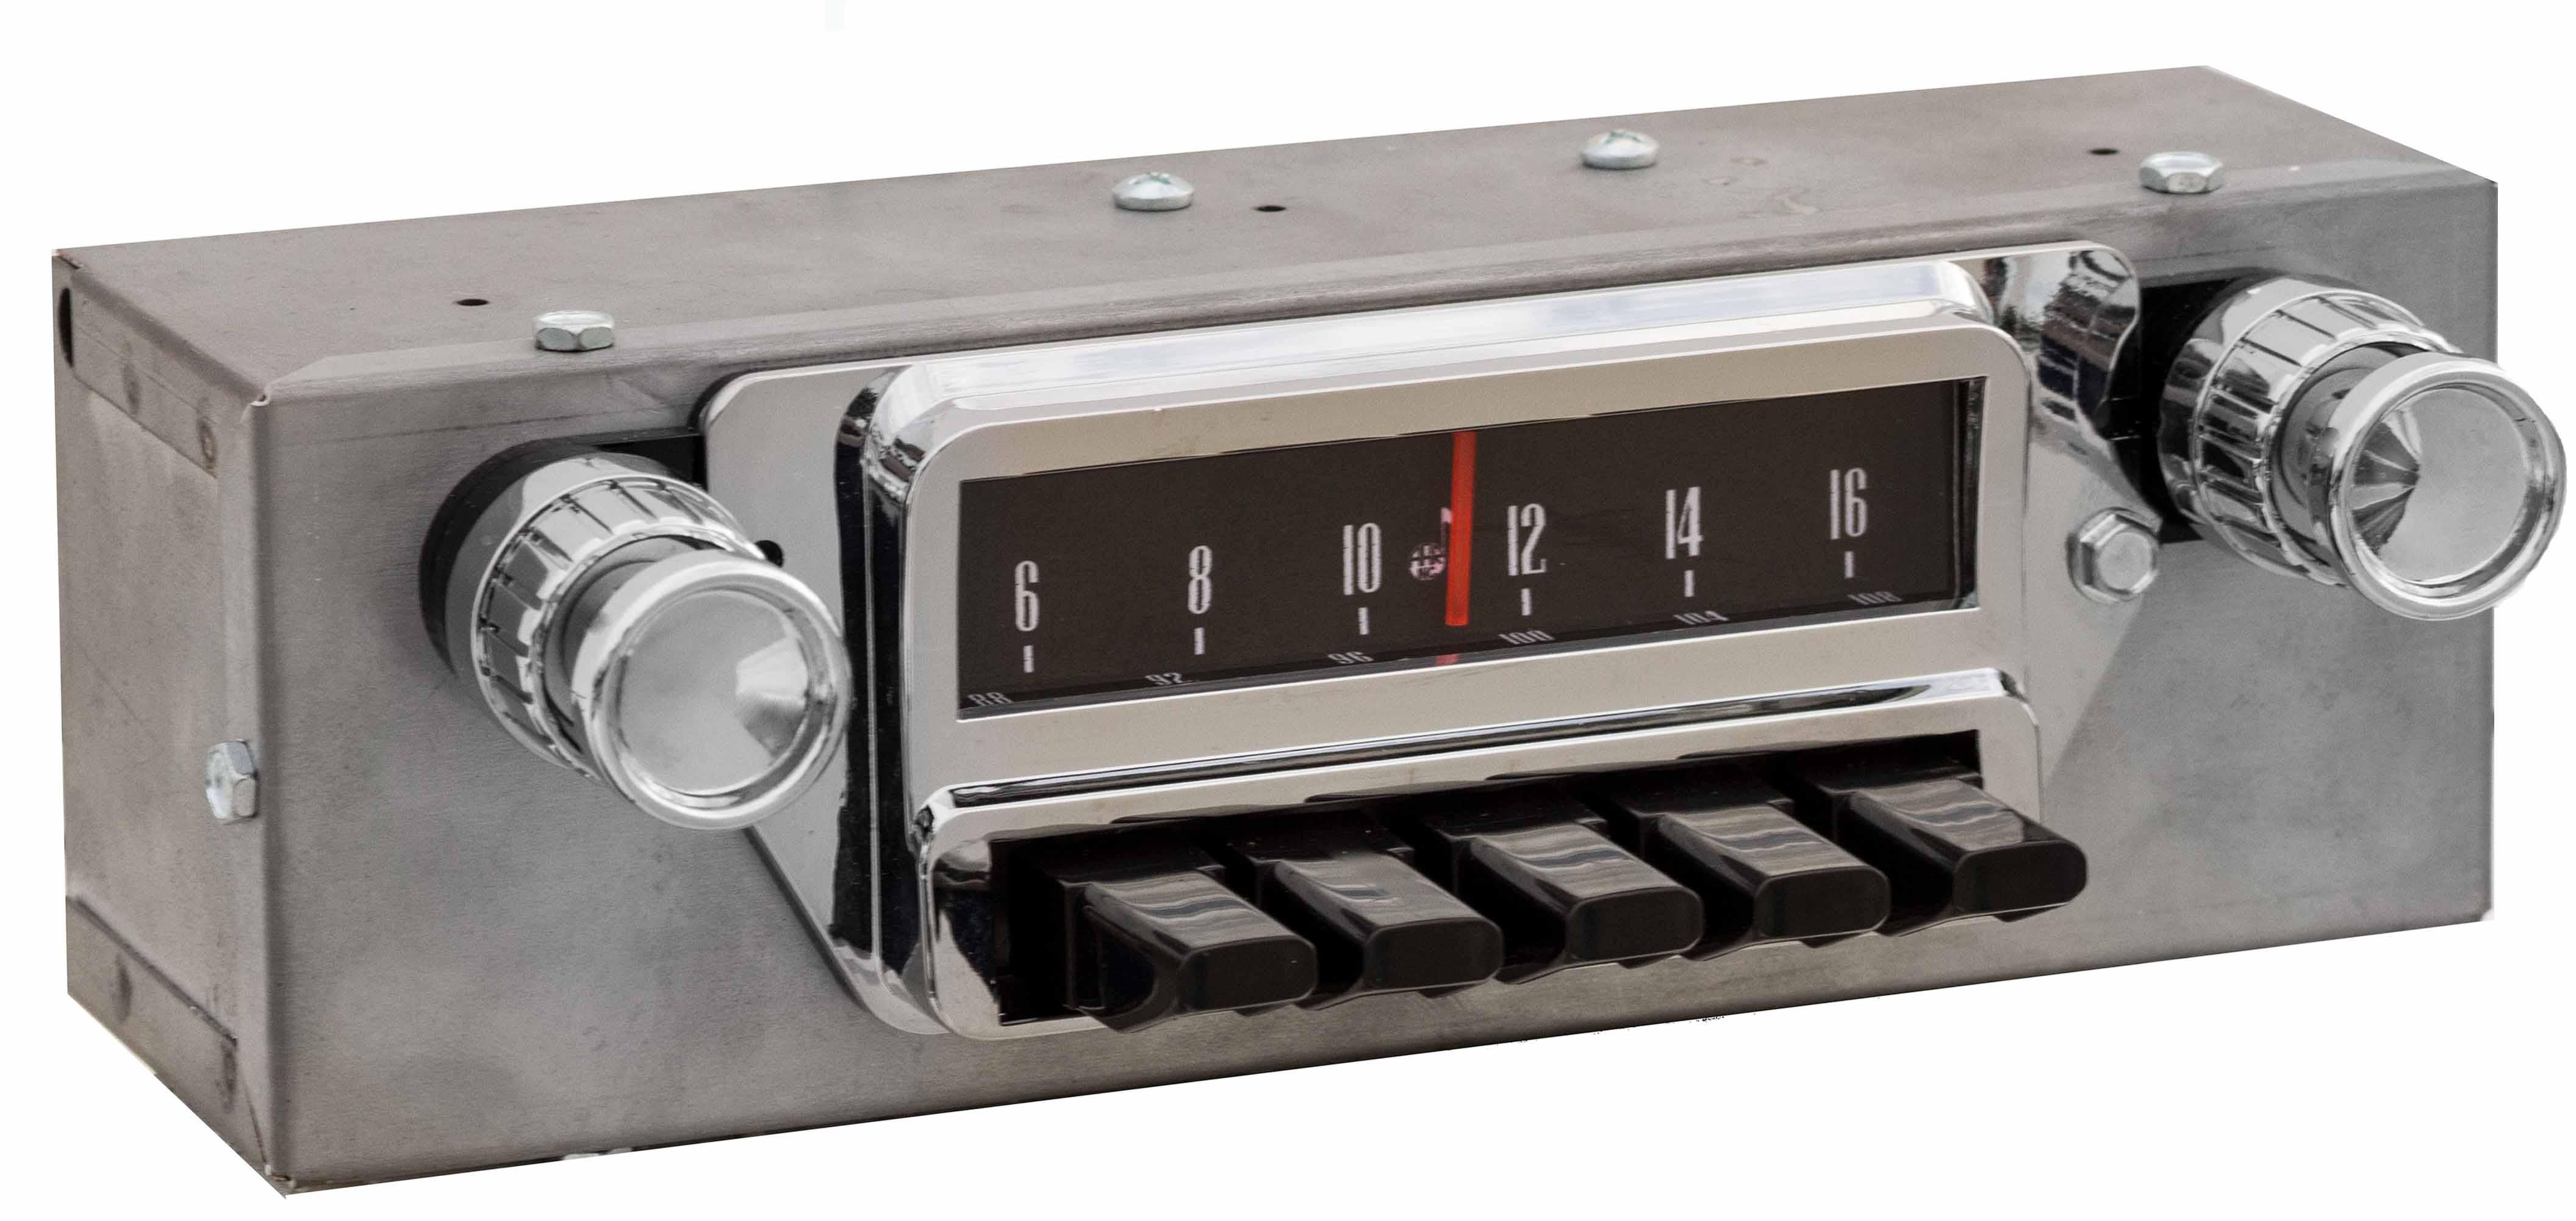 1964 MUSTANG AM-FM STEREO